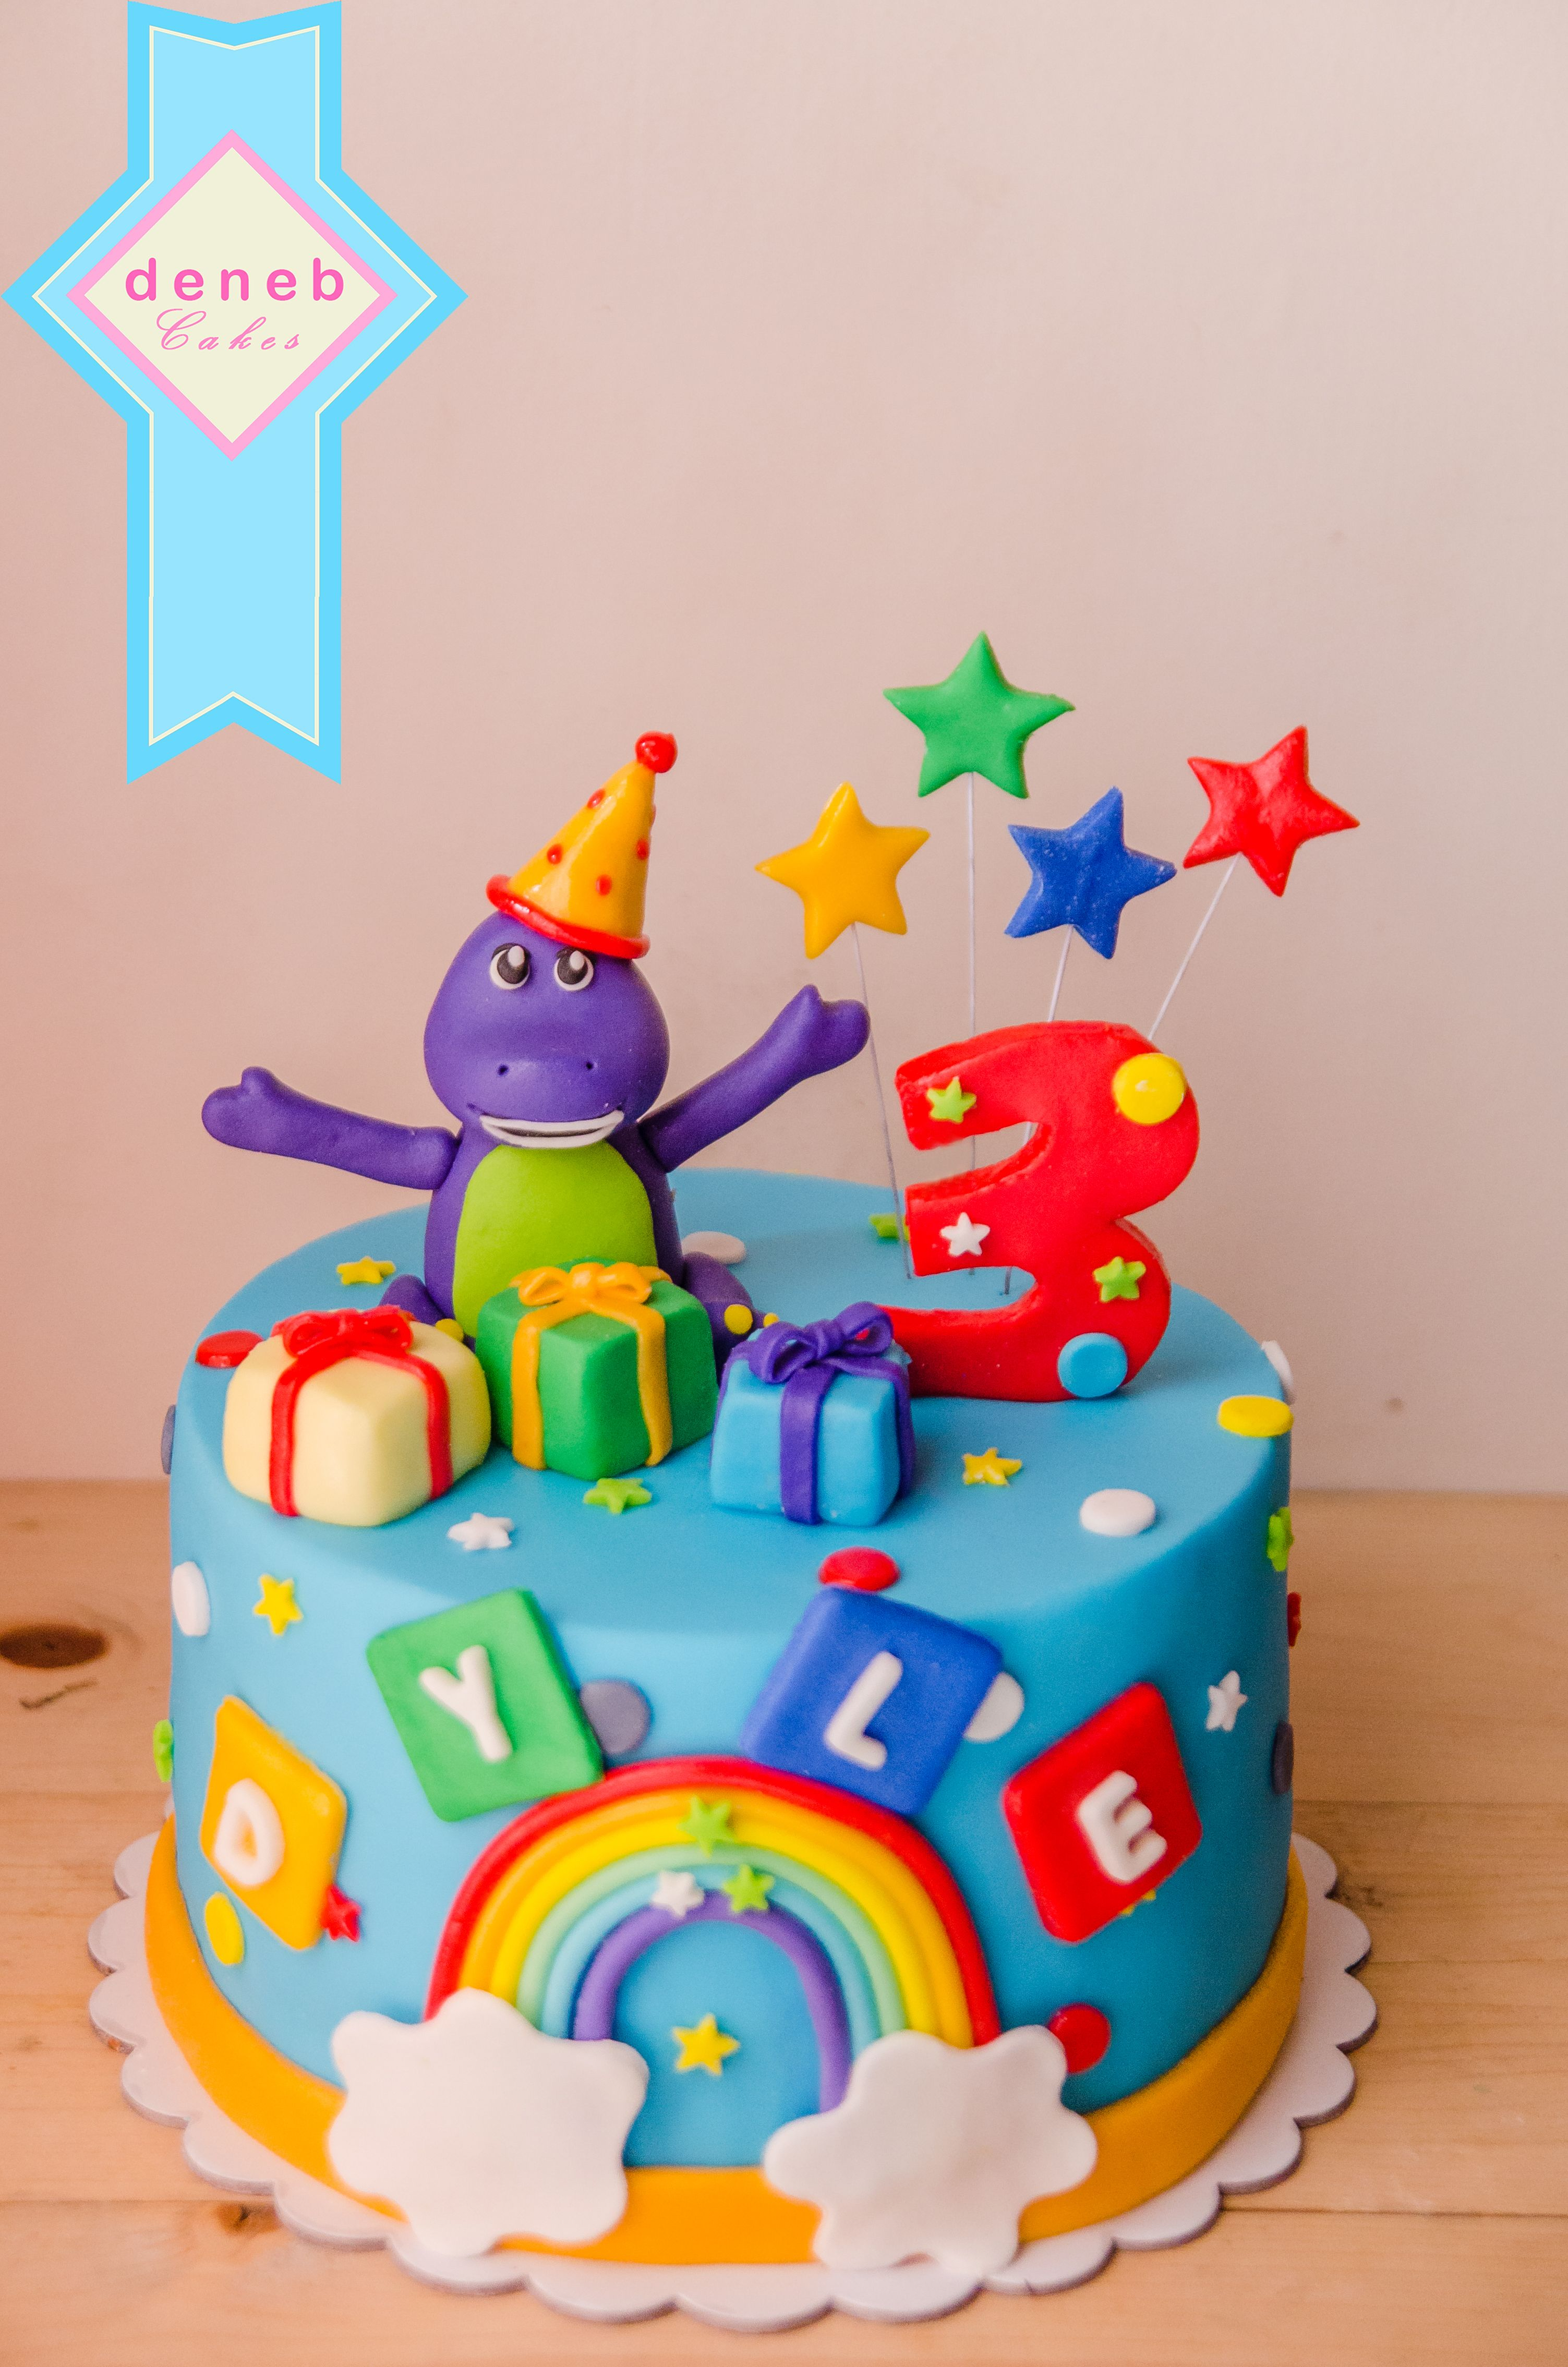 Fondant Barney Friends Plastic Icing cake toppers Pinterest